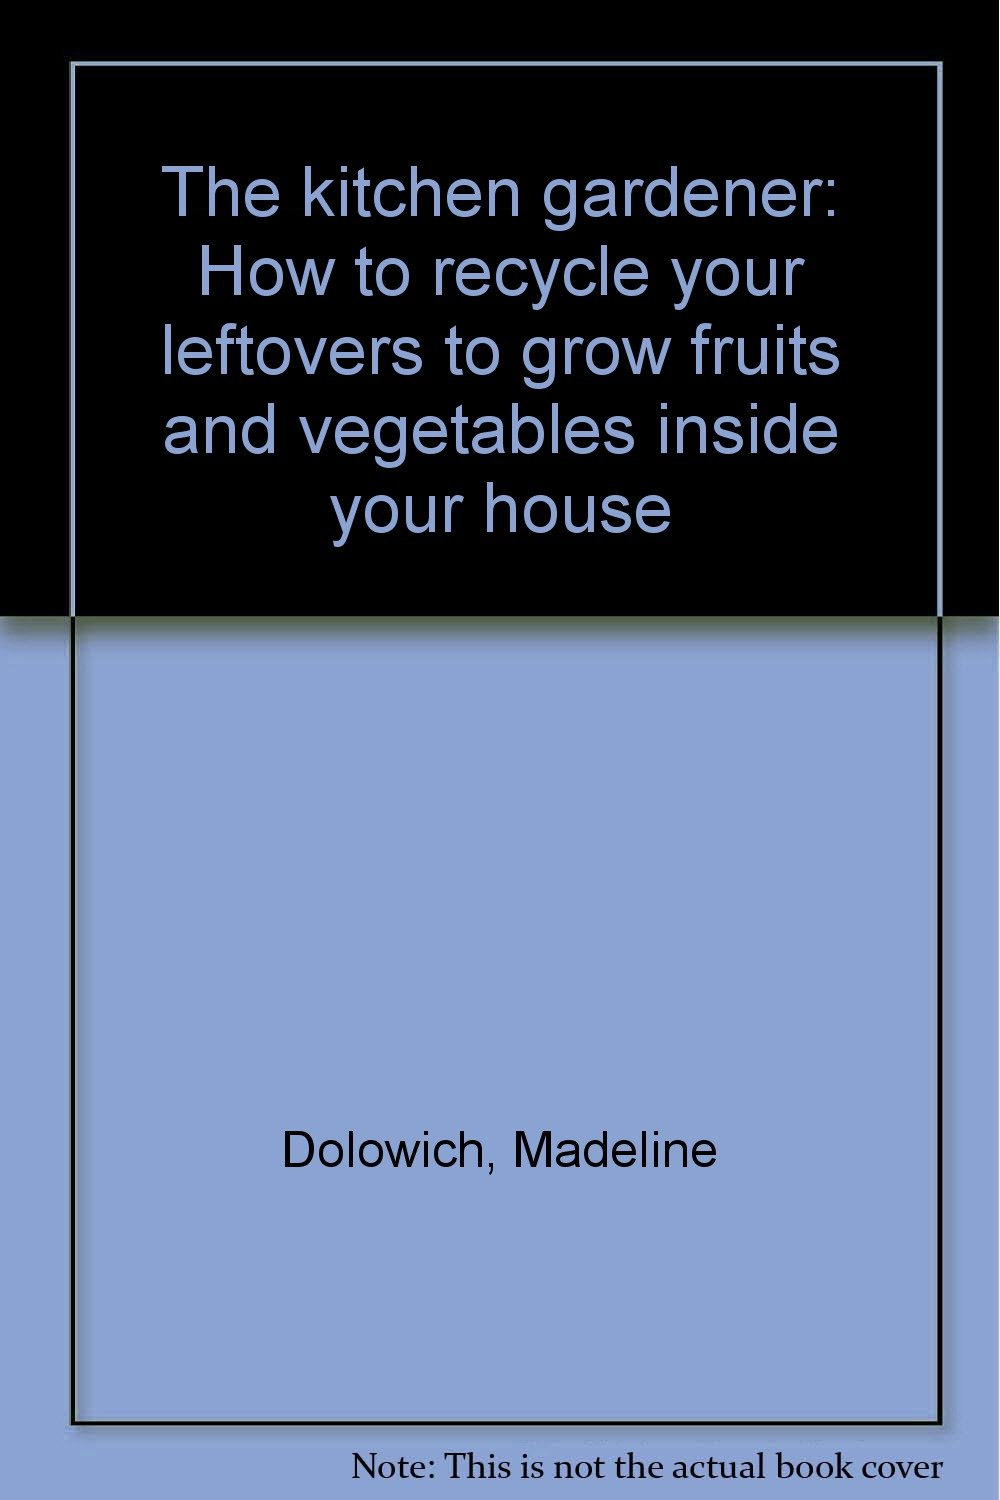 The Kitchen Gardener The Kitchen Gardener How To Recycle Your Leftovers To Grow Fruits